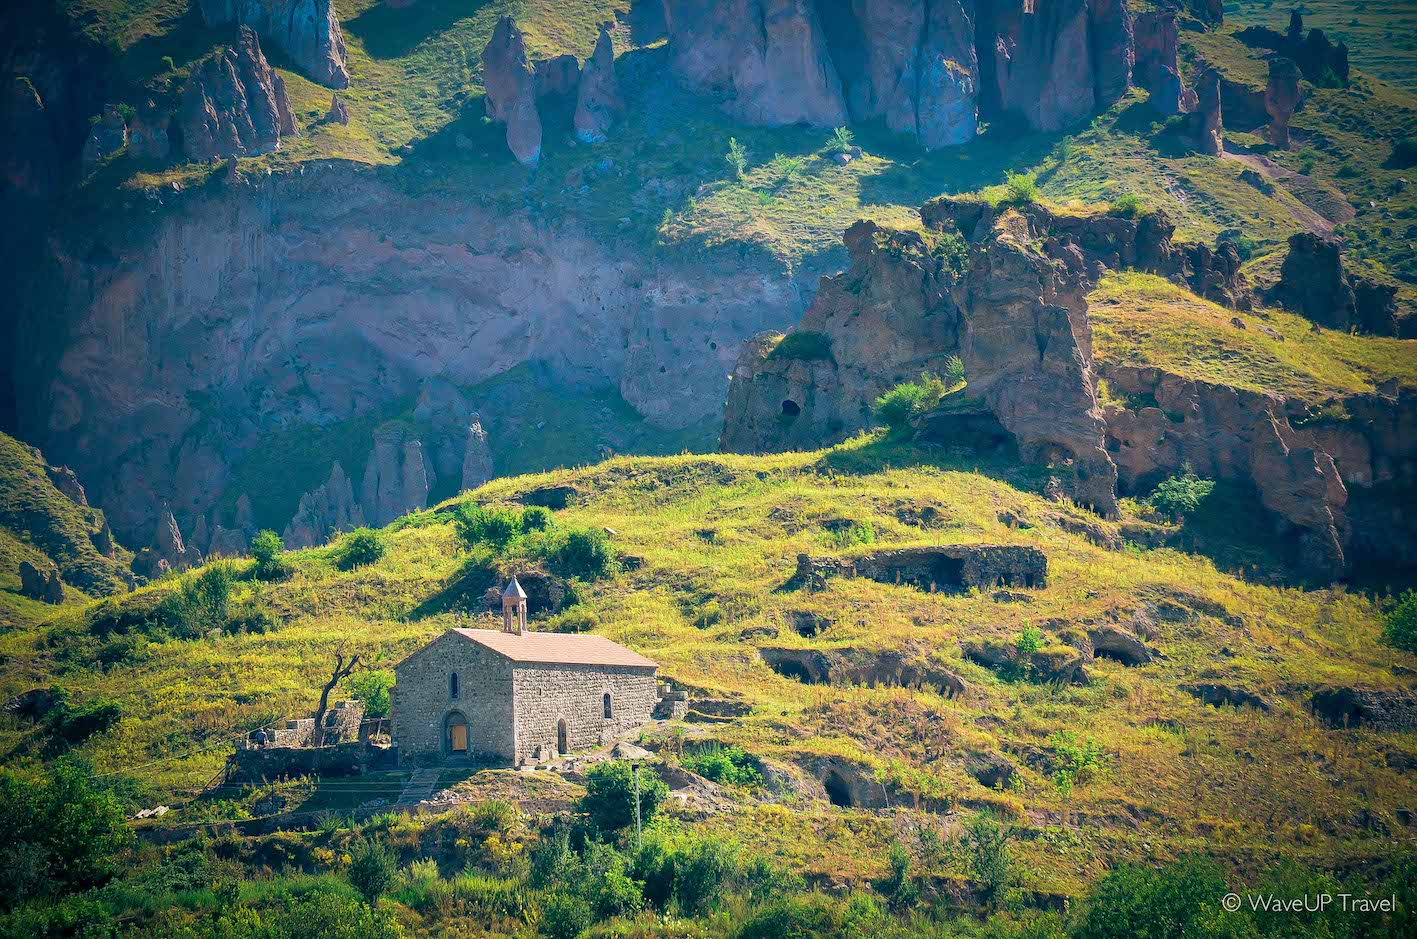 Old settlement of Goris - one of 7 most secret tourist spots in Armenia and one of the most beautiful Armenia sights